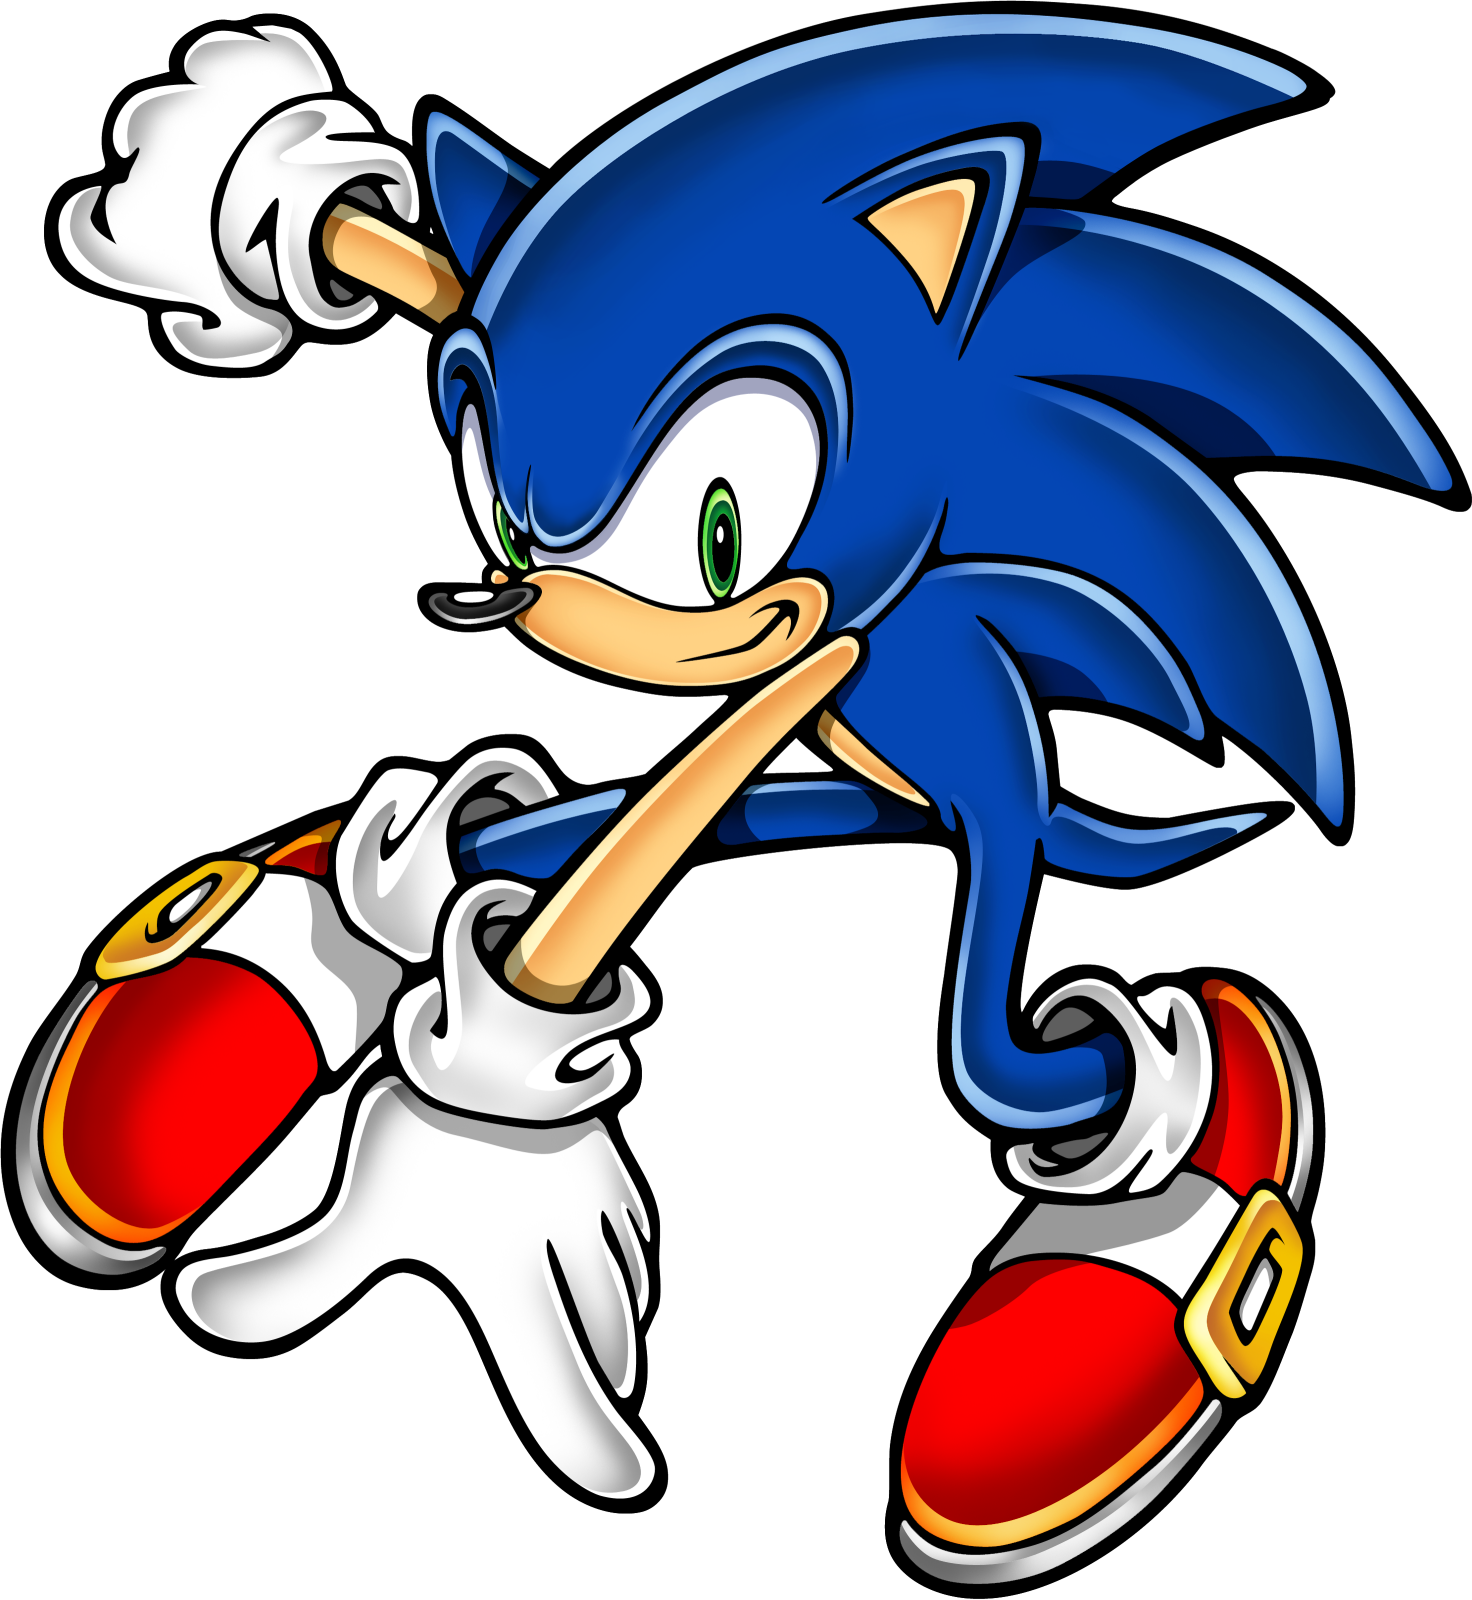 Sonic The Hedgehog clipart #2, Download drawings